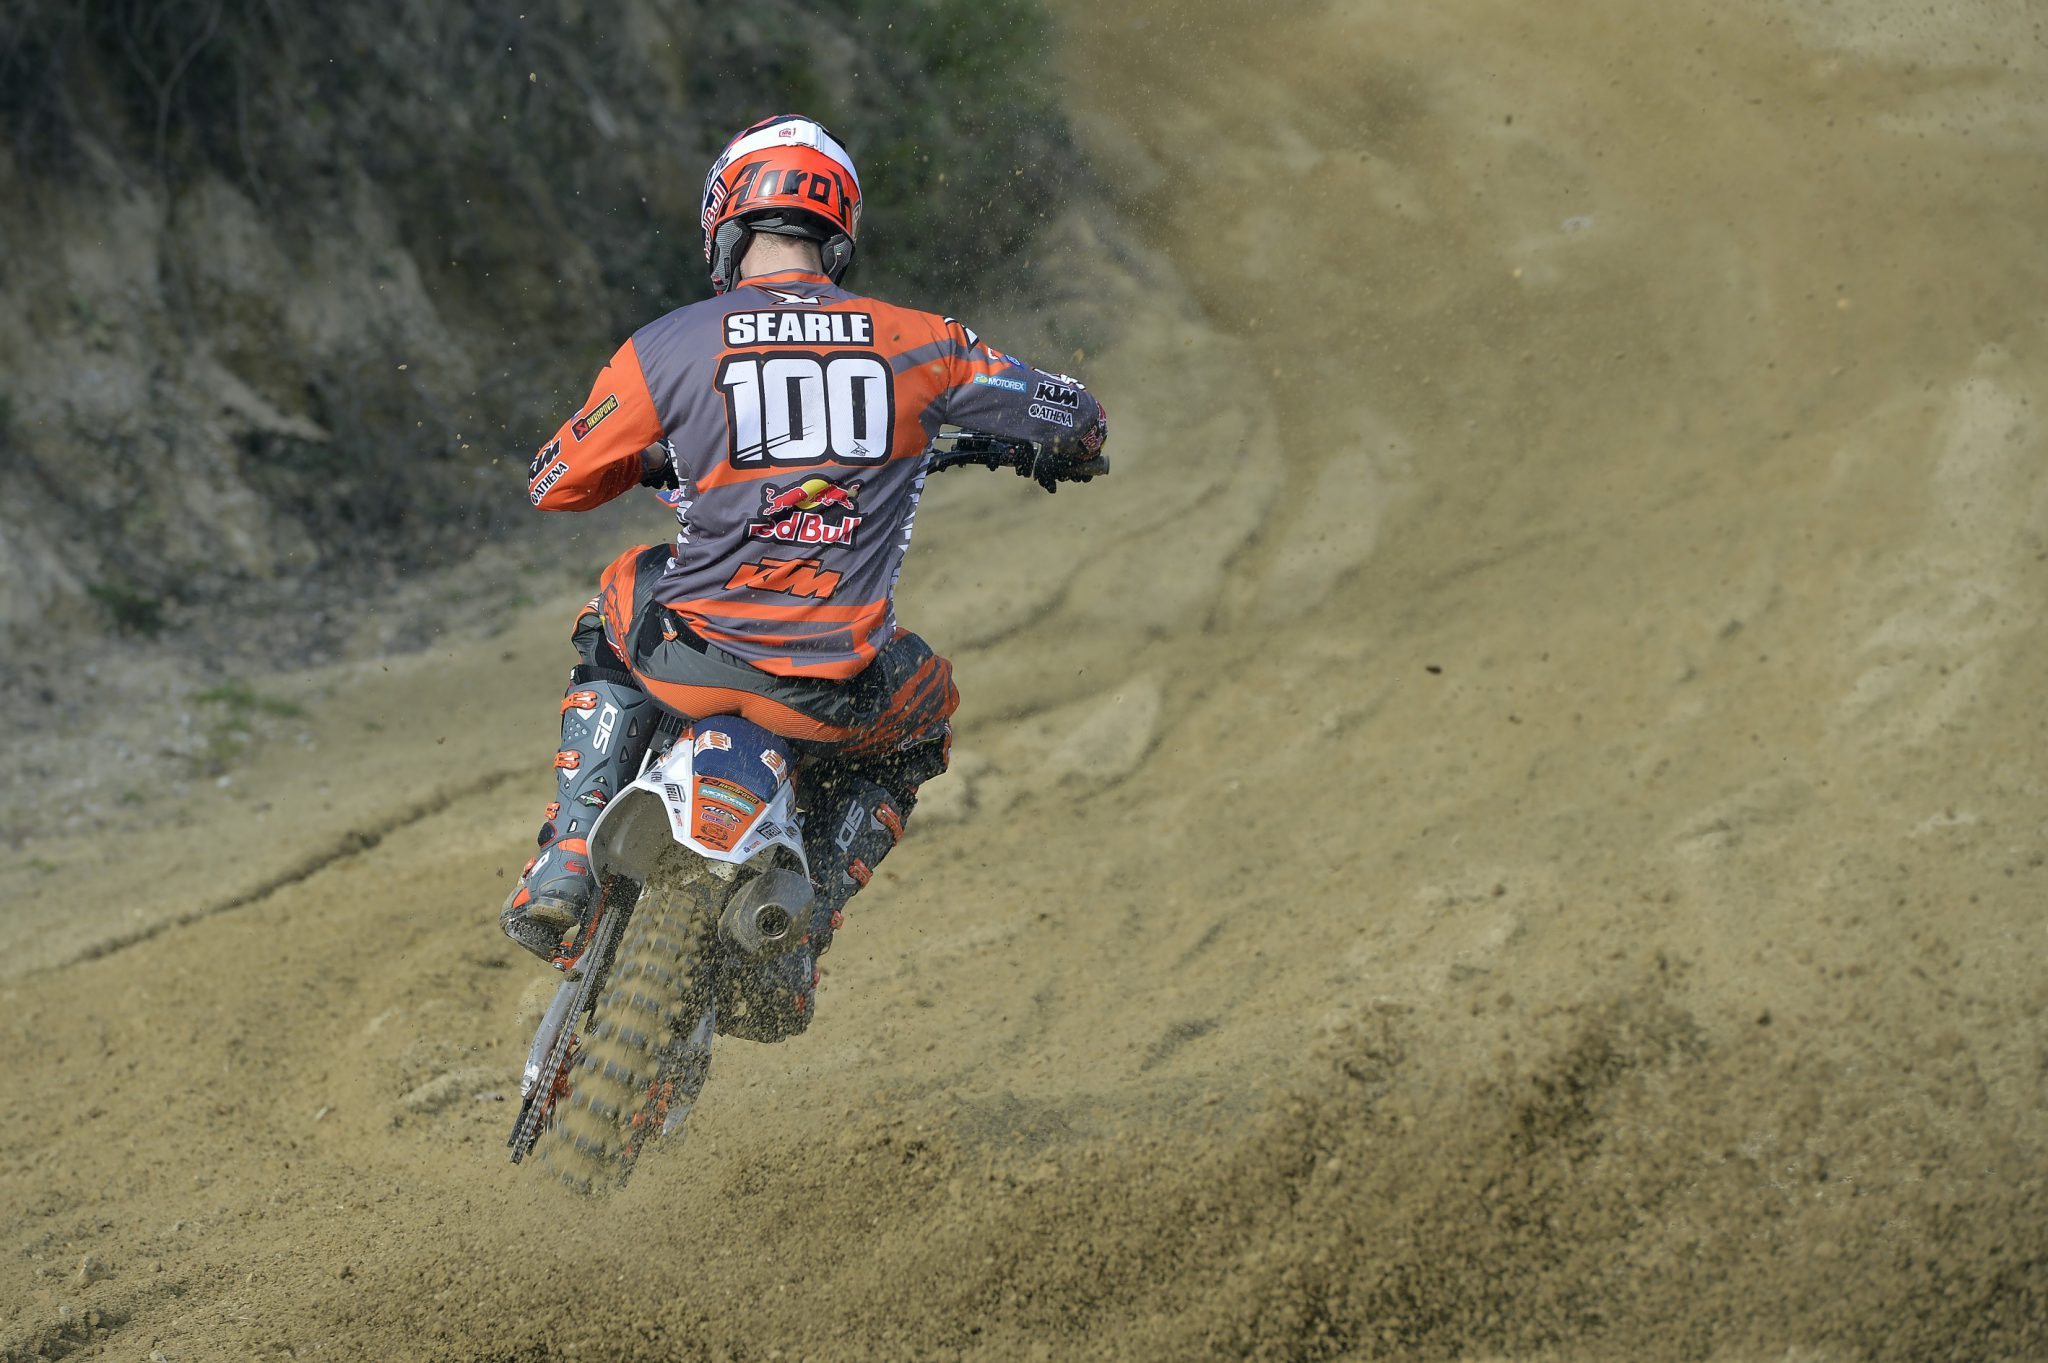 102851_13_059_KTM15_Searle_action_2836